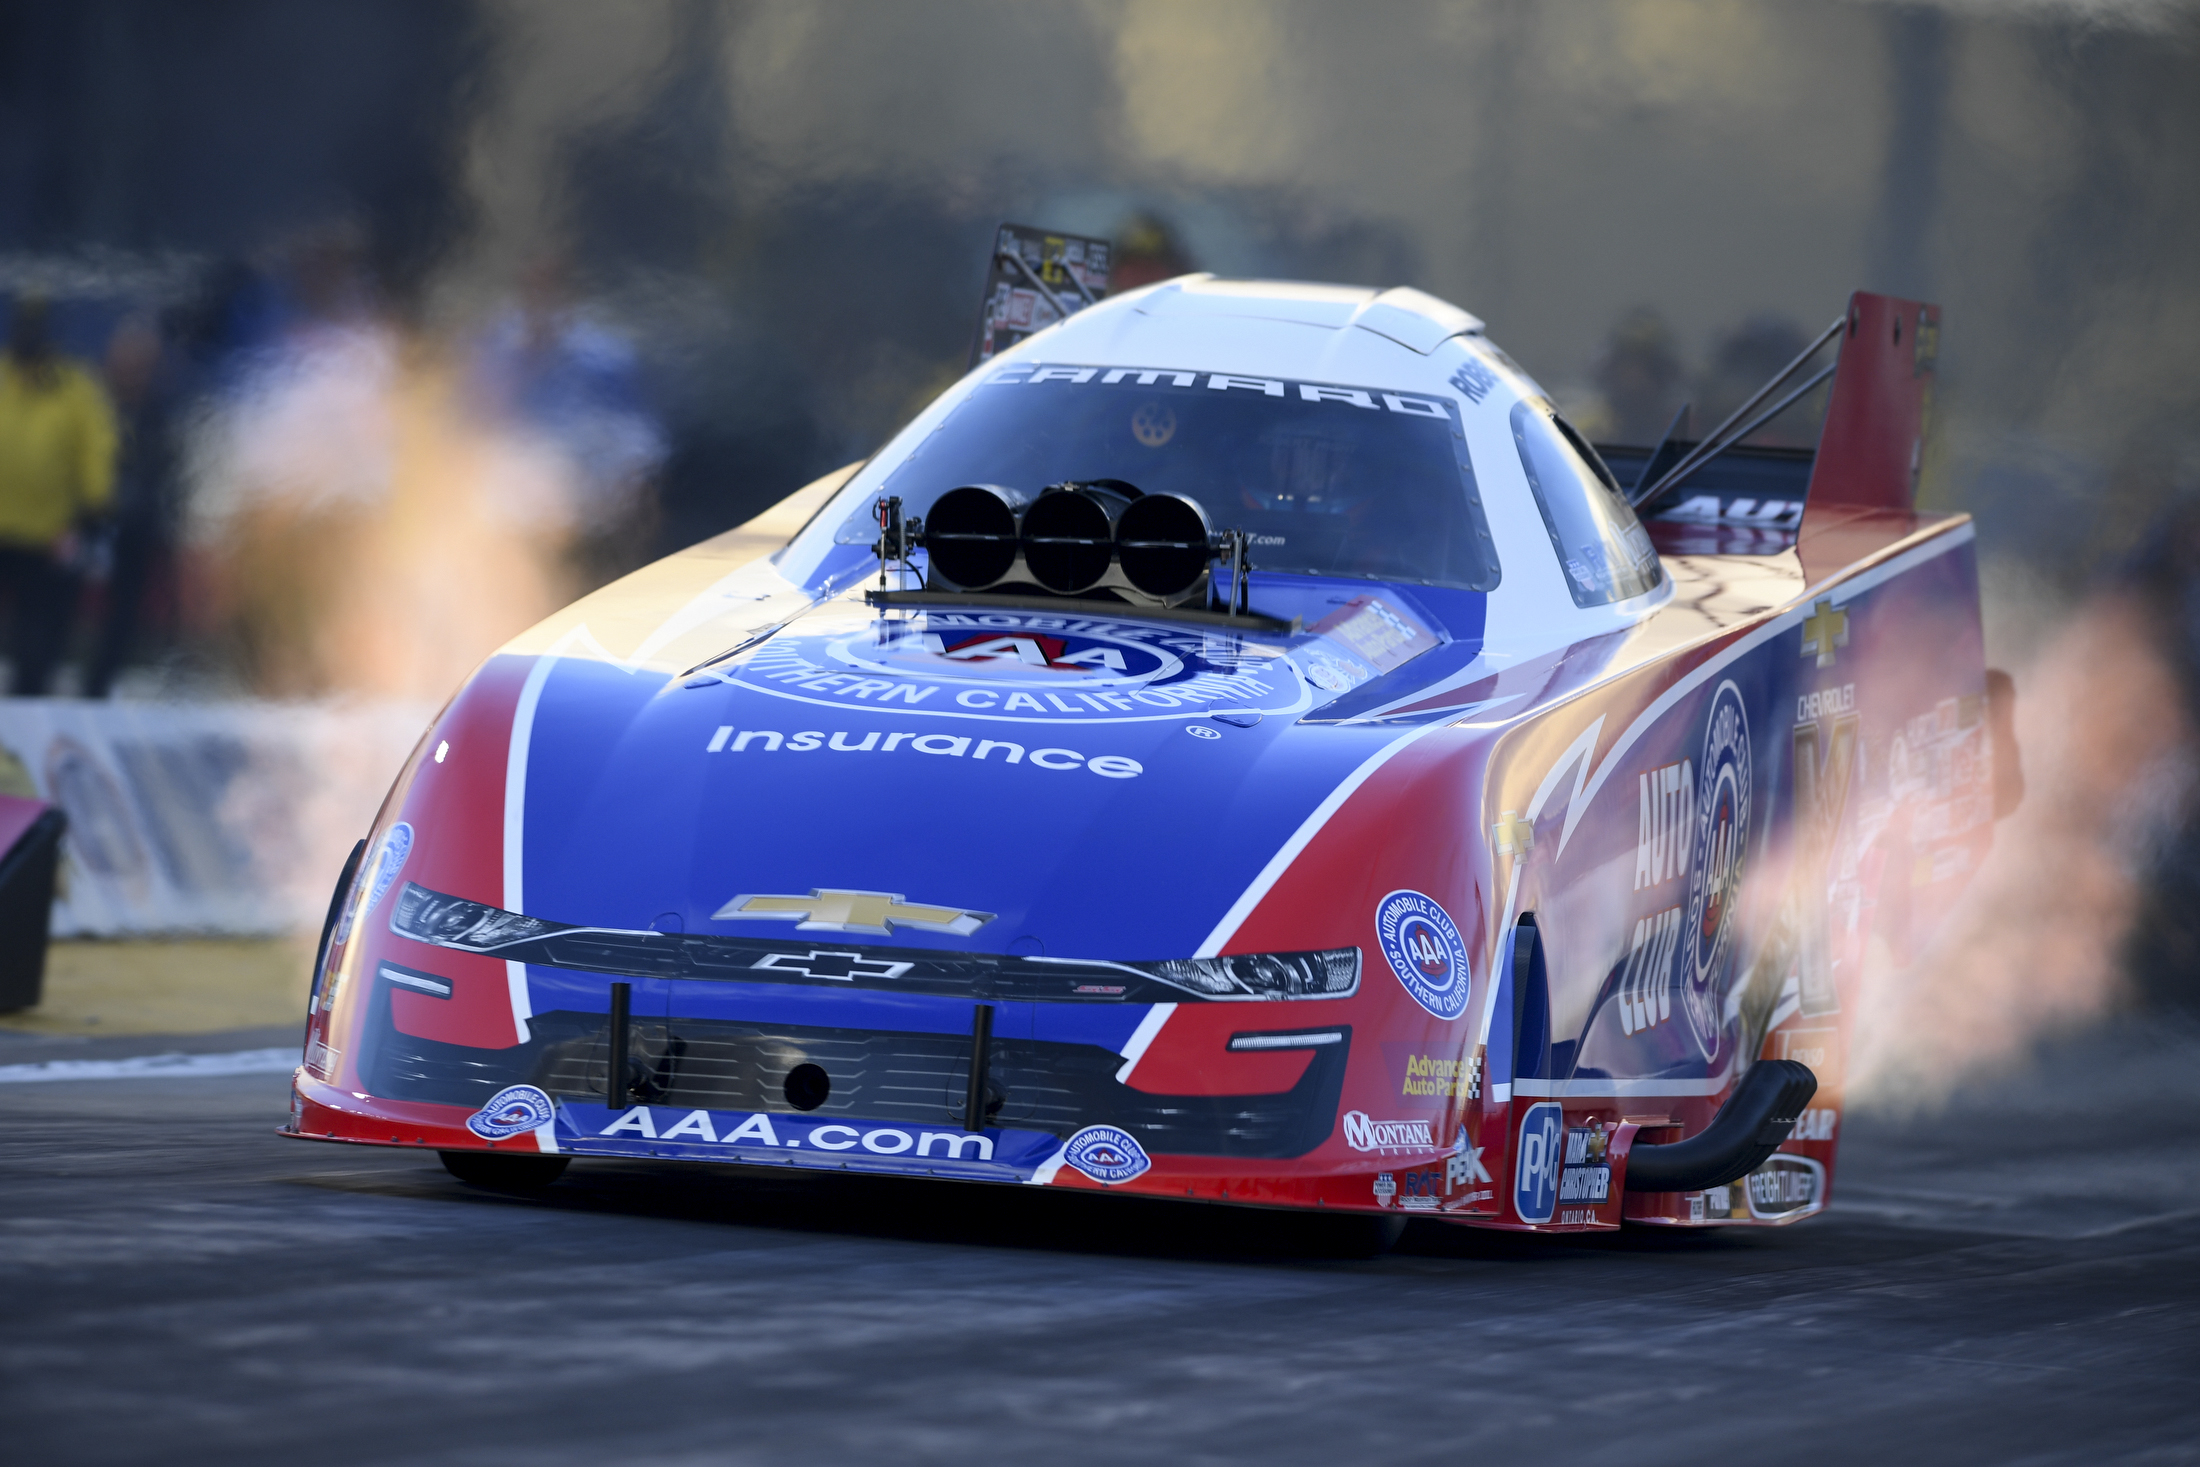 Auto Club of Southern California Funny Car pilot Robert Hight racing on Saturday at the Lucas Oil NHRA Winternationals